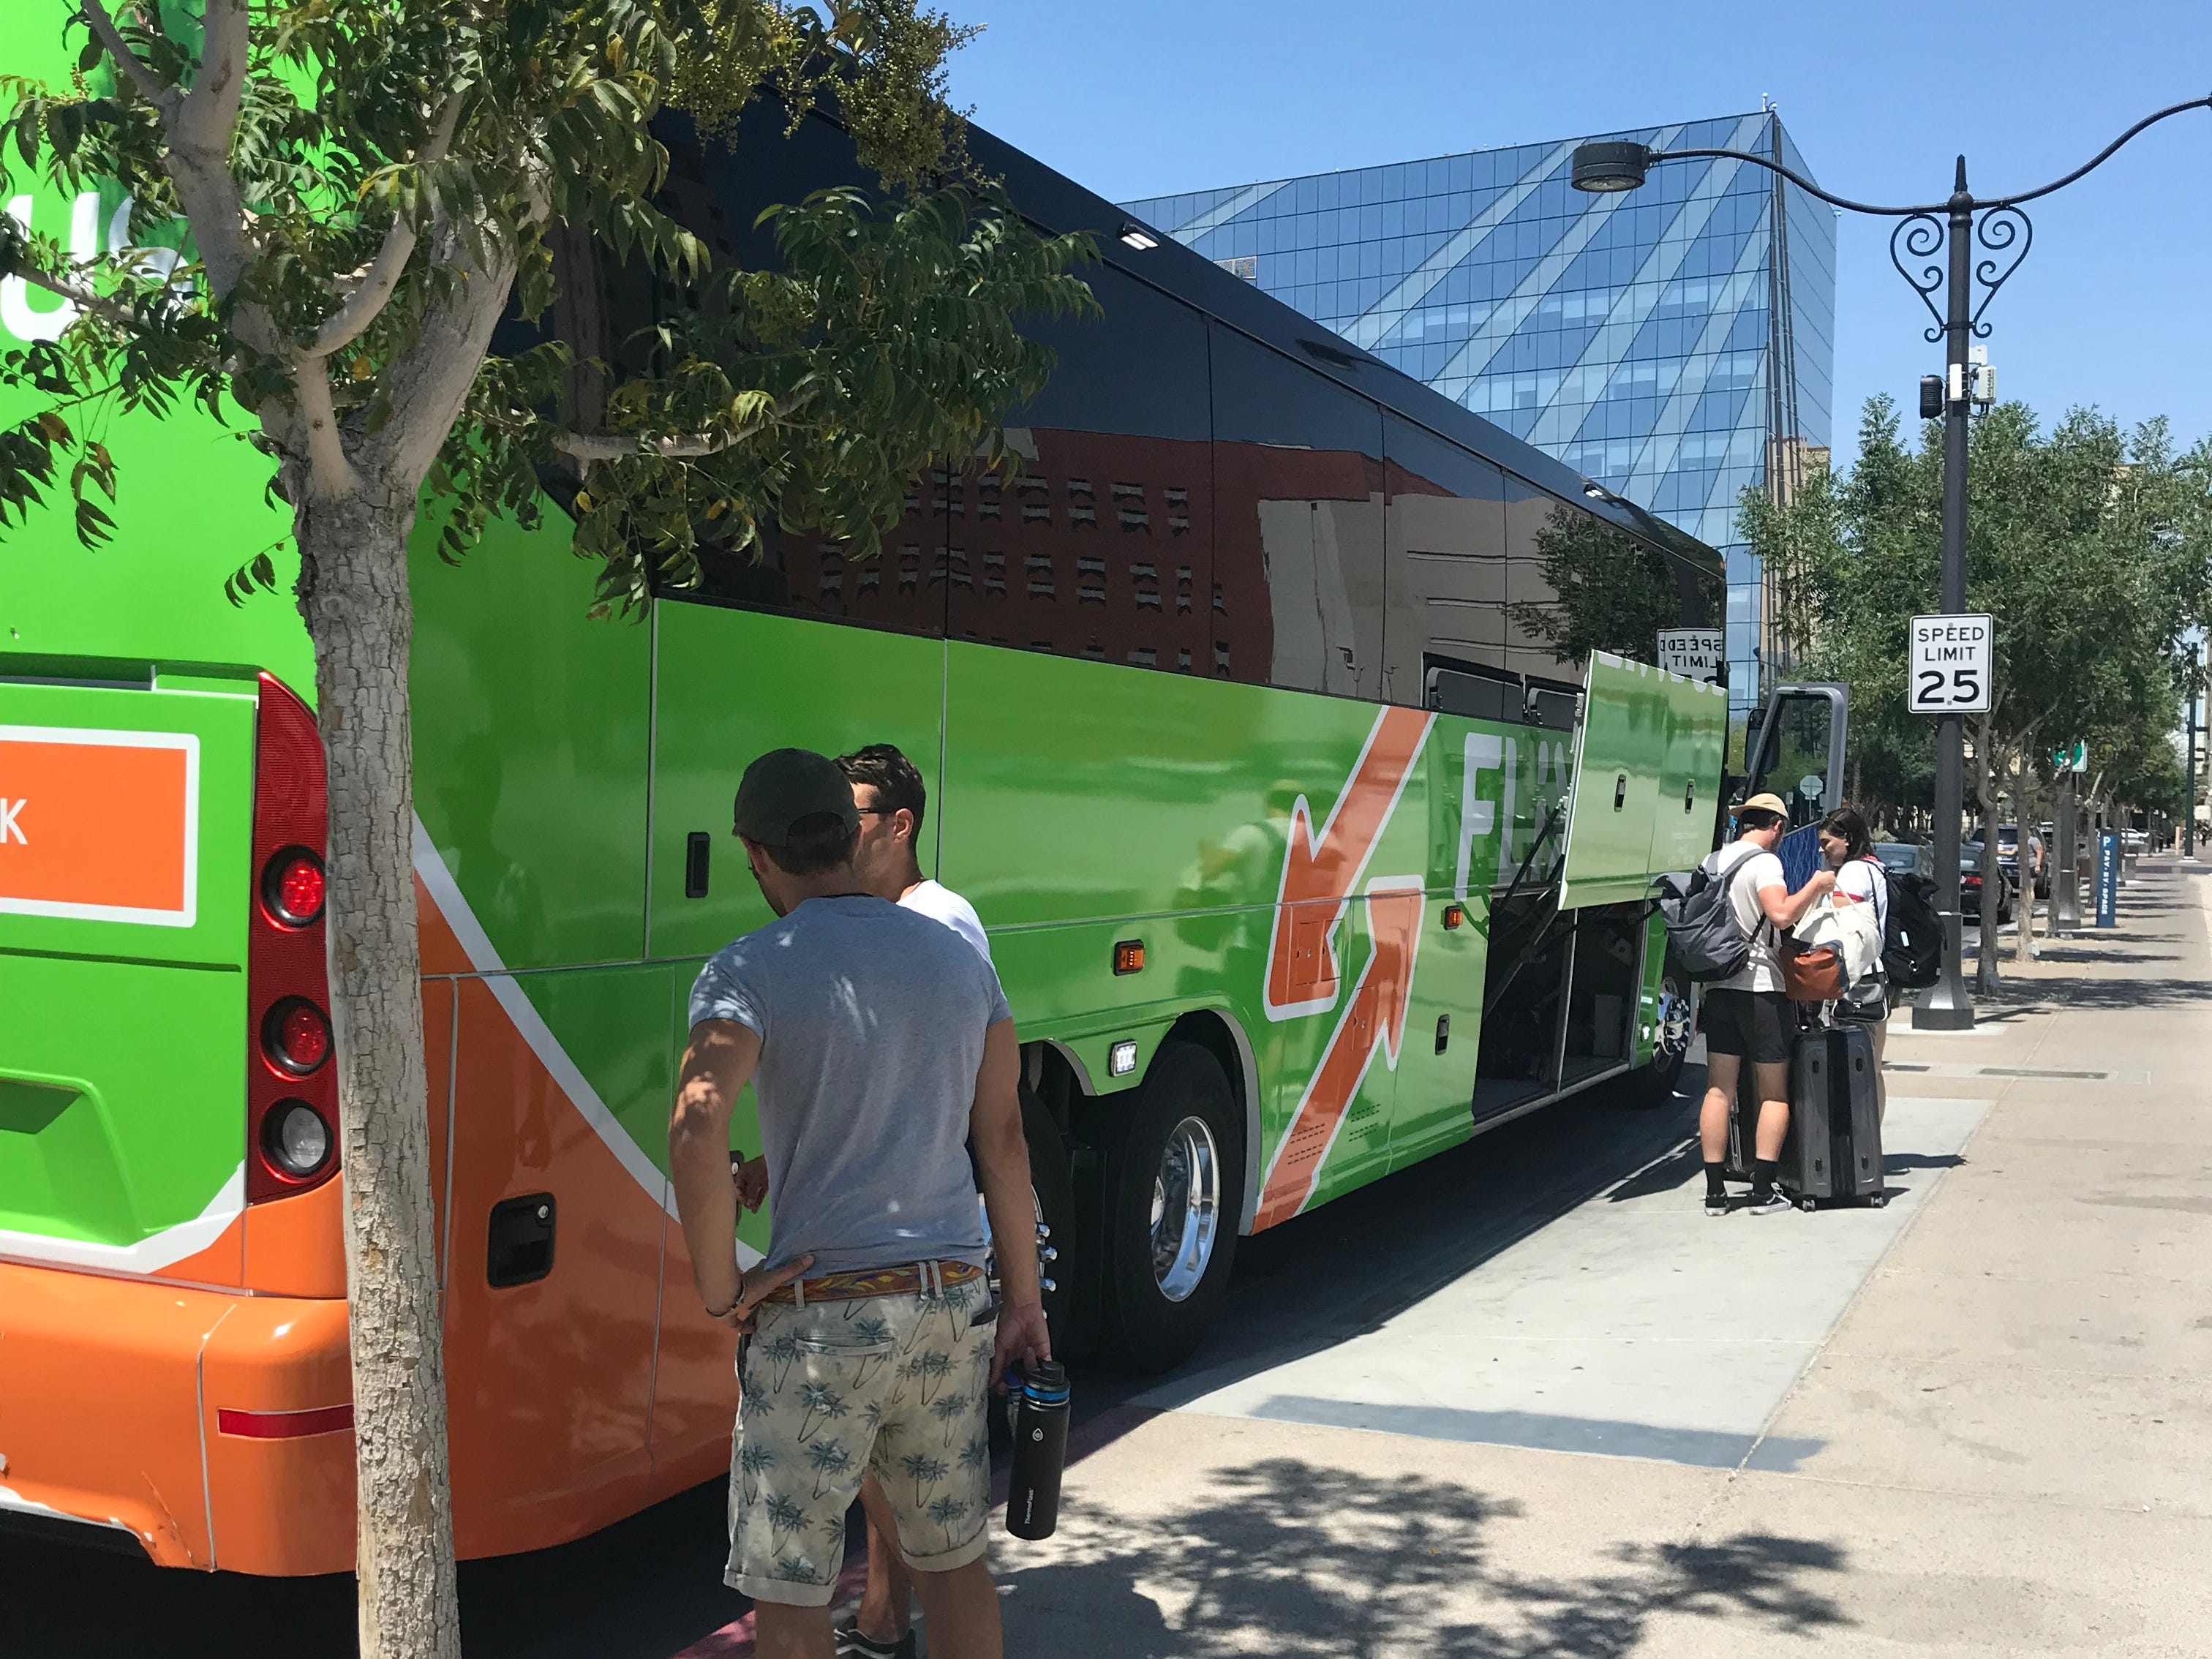 A FlixBus picks up passengers at a stop in downtown Las Vegas. The German company, which just expanded to the United States, is known for its bright green buses.